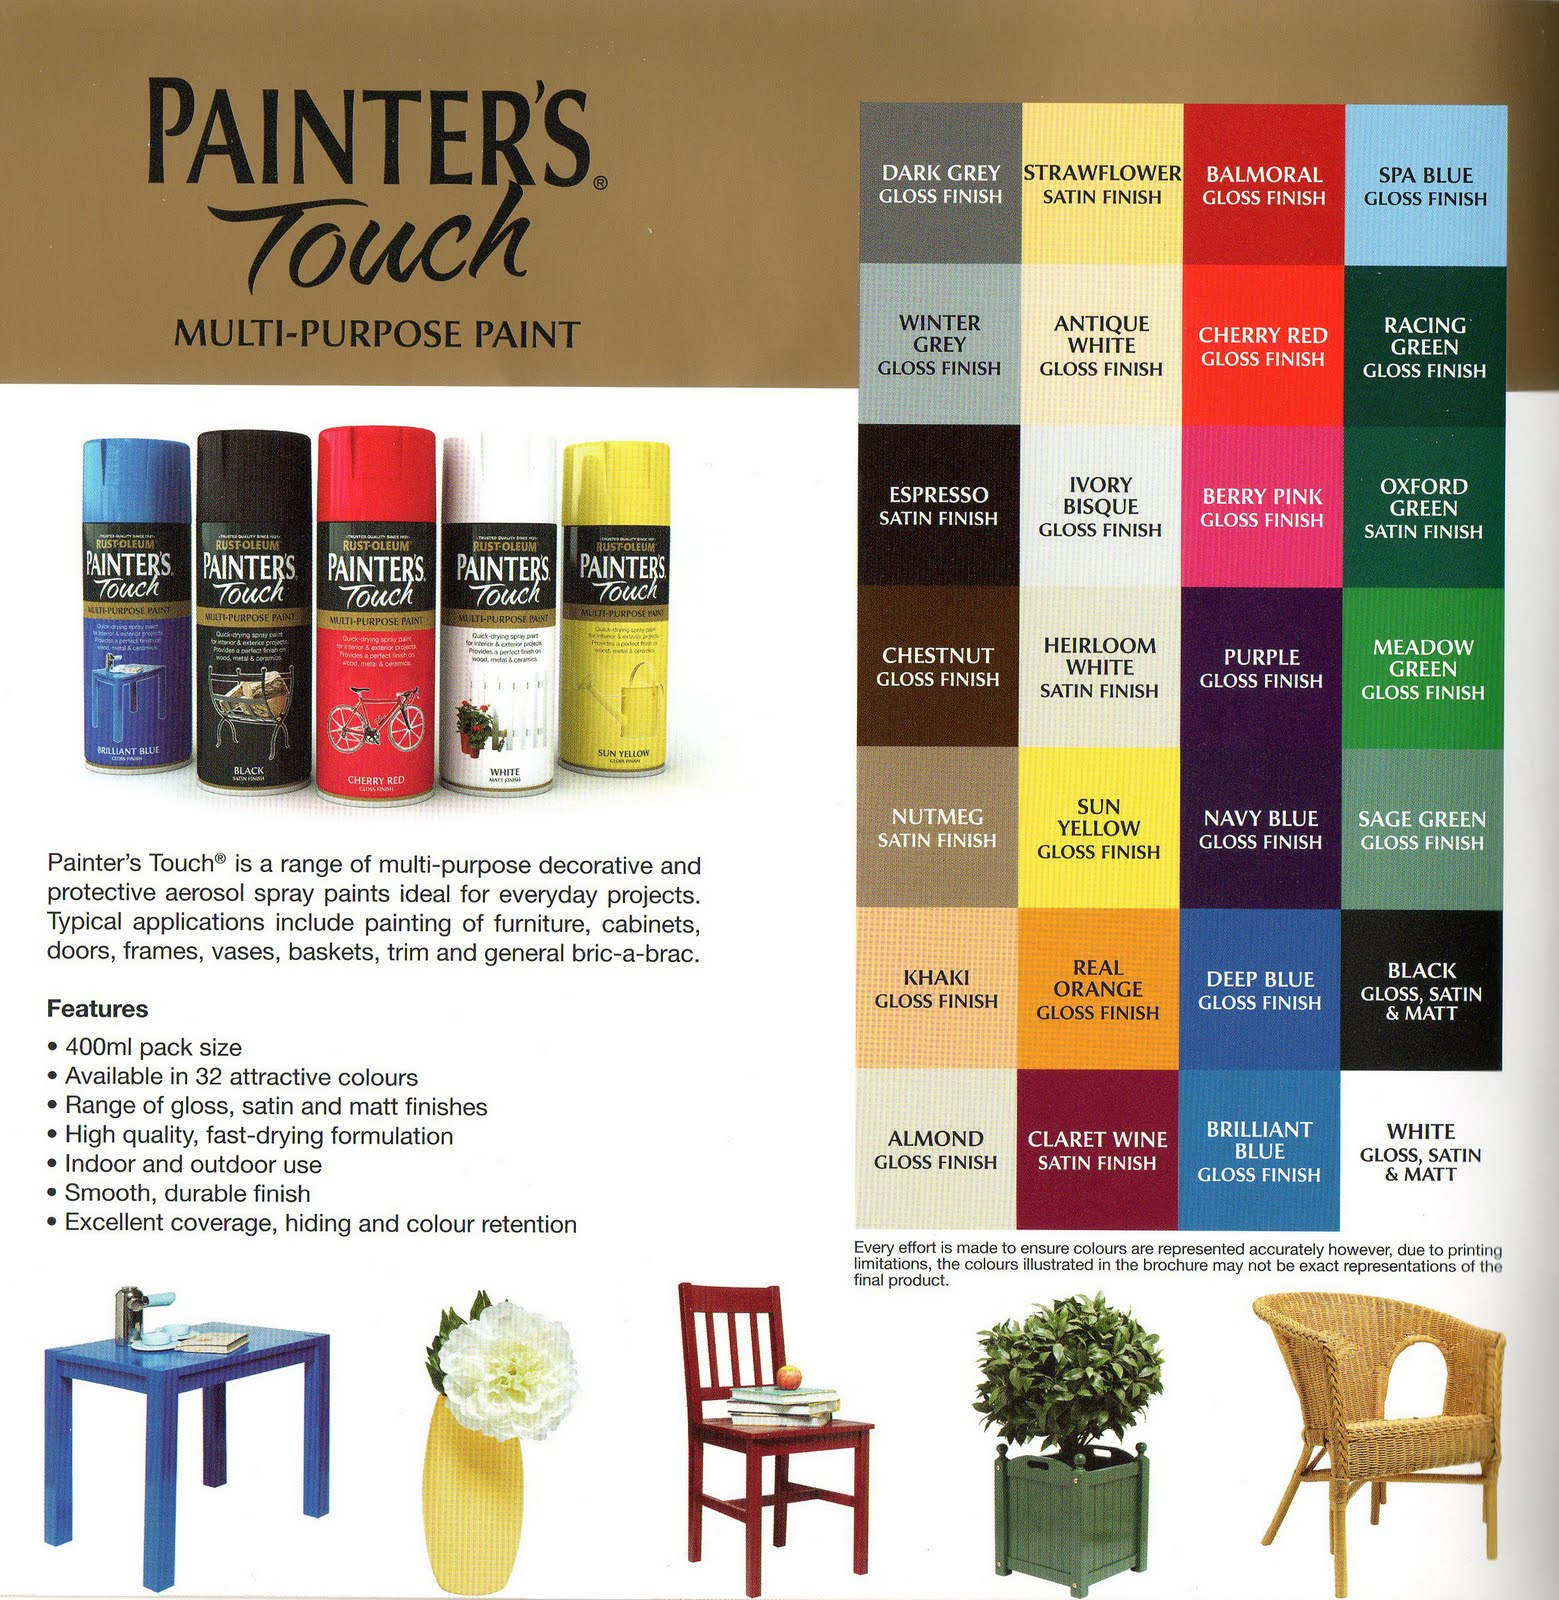 rustoleum paint color chartNicky Lount May 2011